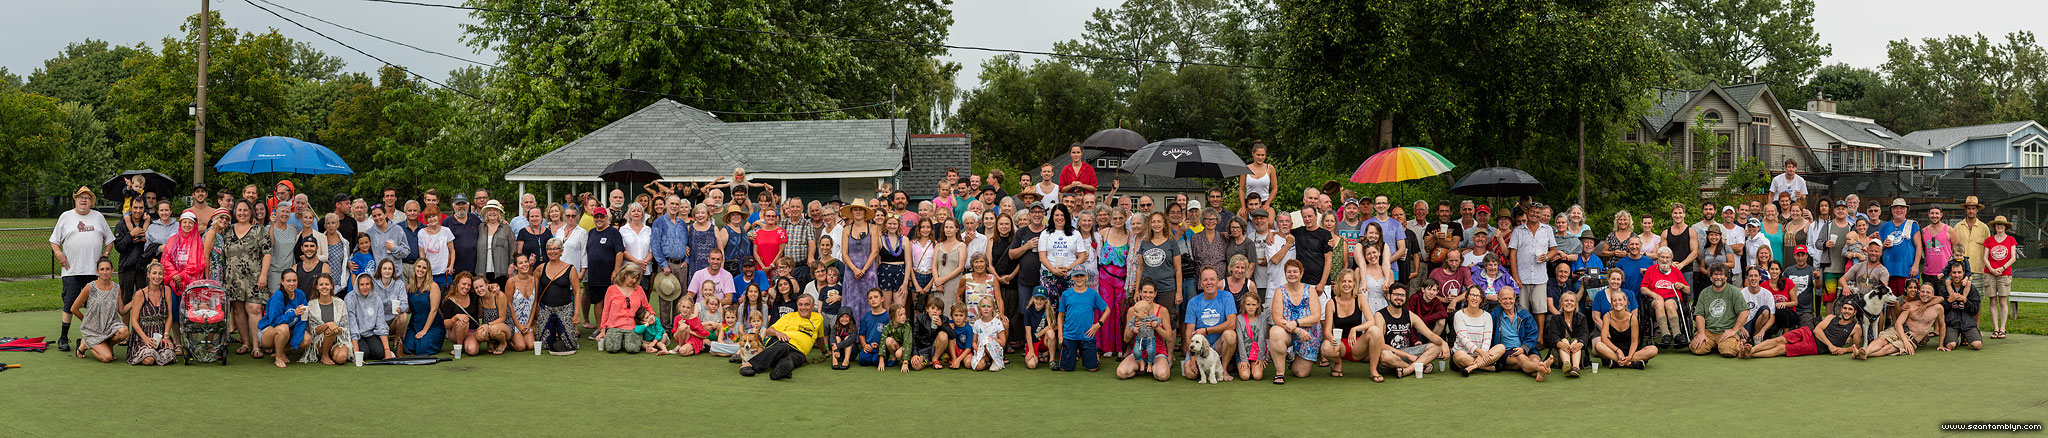 2018 community portrait panorama, Ward's Island, Toronto Islands